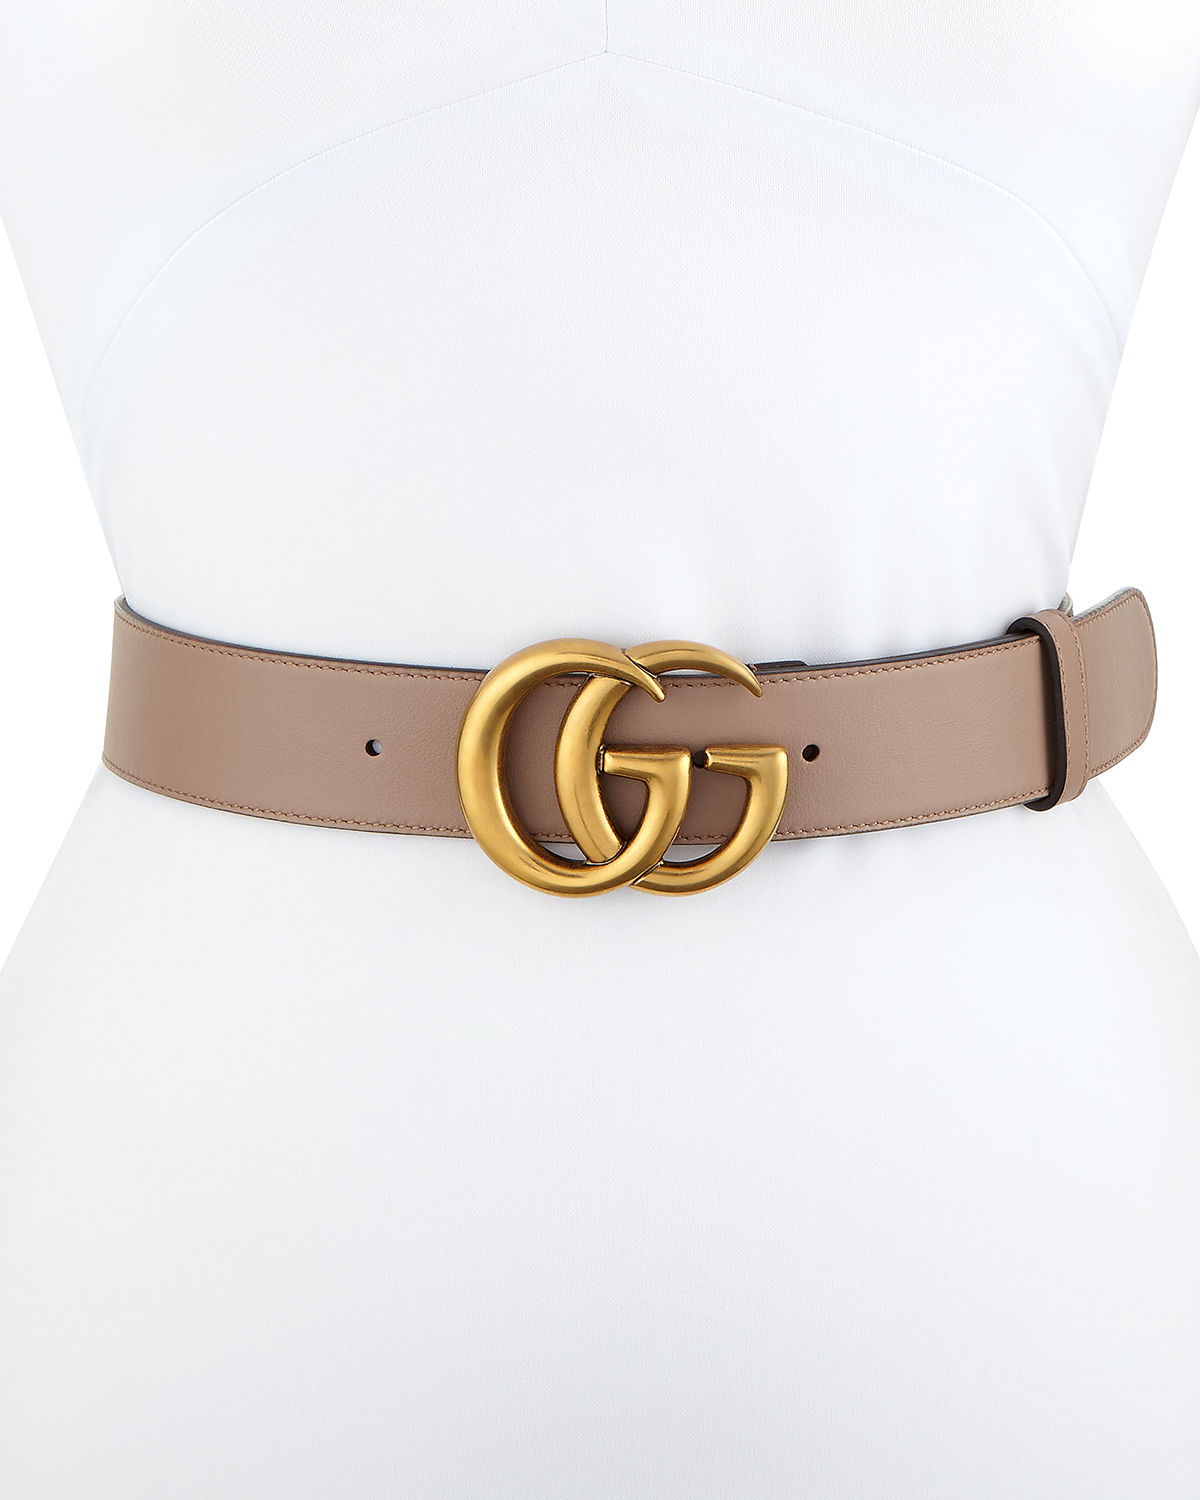 b430d15343d Gucci Leather Belt with GG Buckle